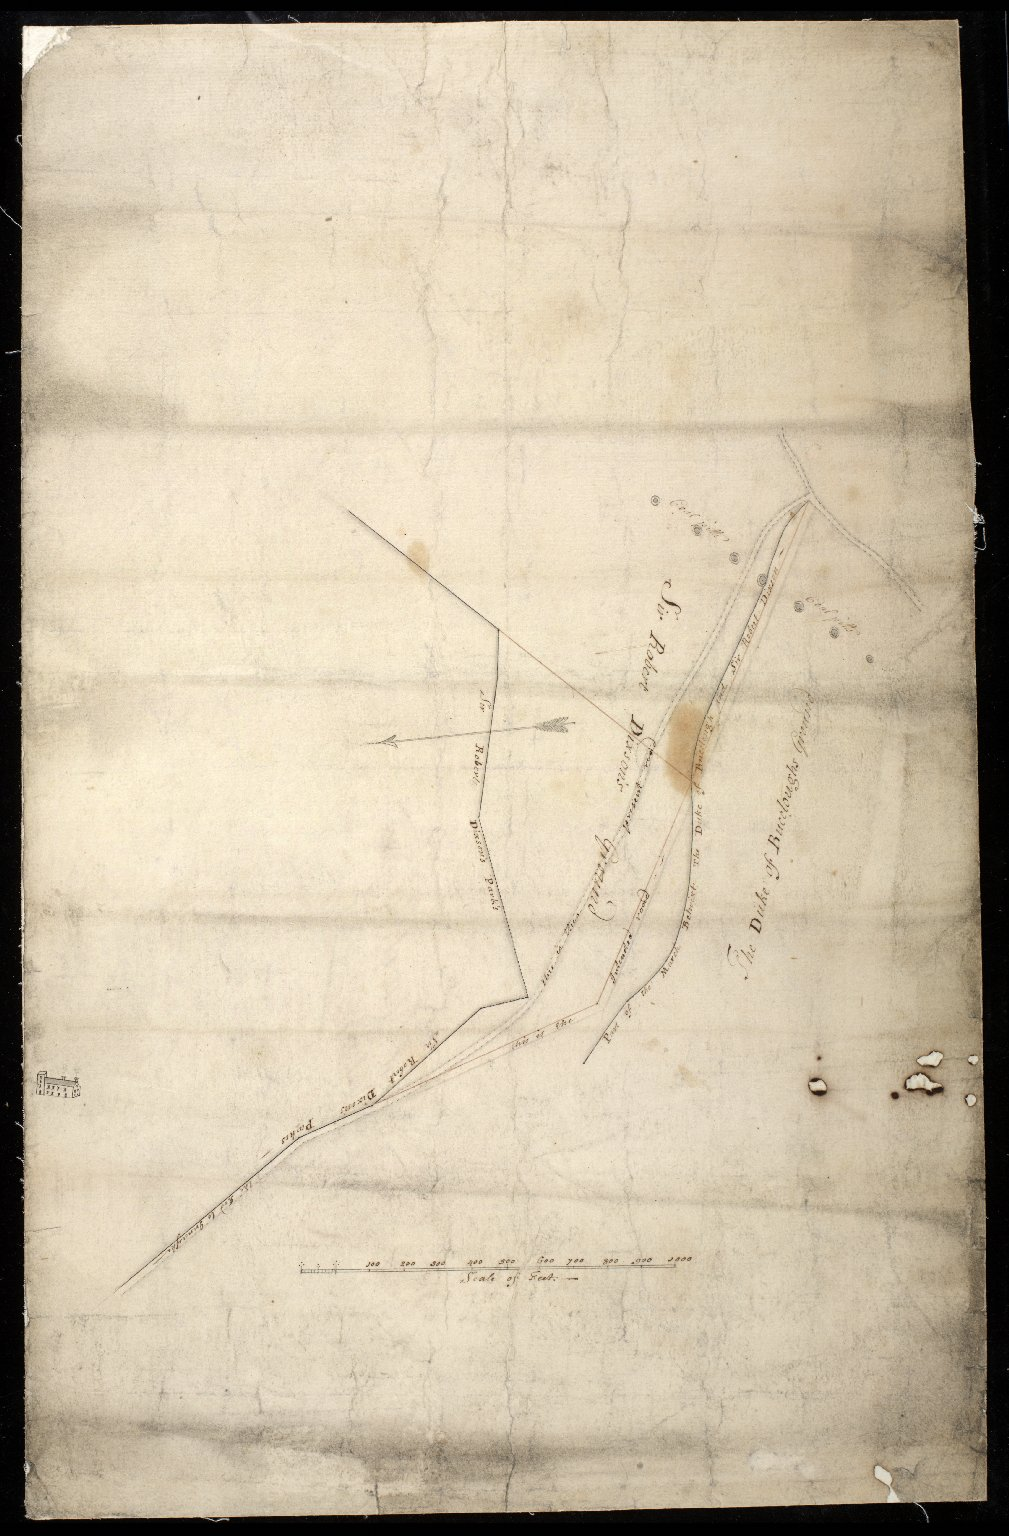 Plan of ground betwixt the Duke of Buccleuch's ground and Sir Robert Dickson's ground, showing the present and intended roads to Inveresk [1 of 1]